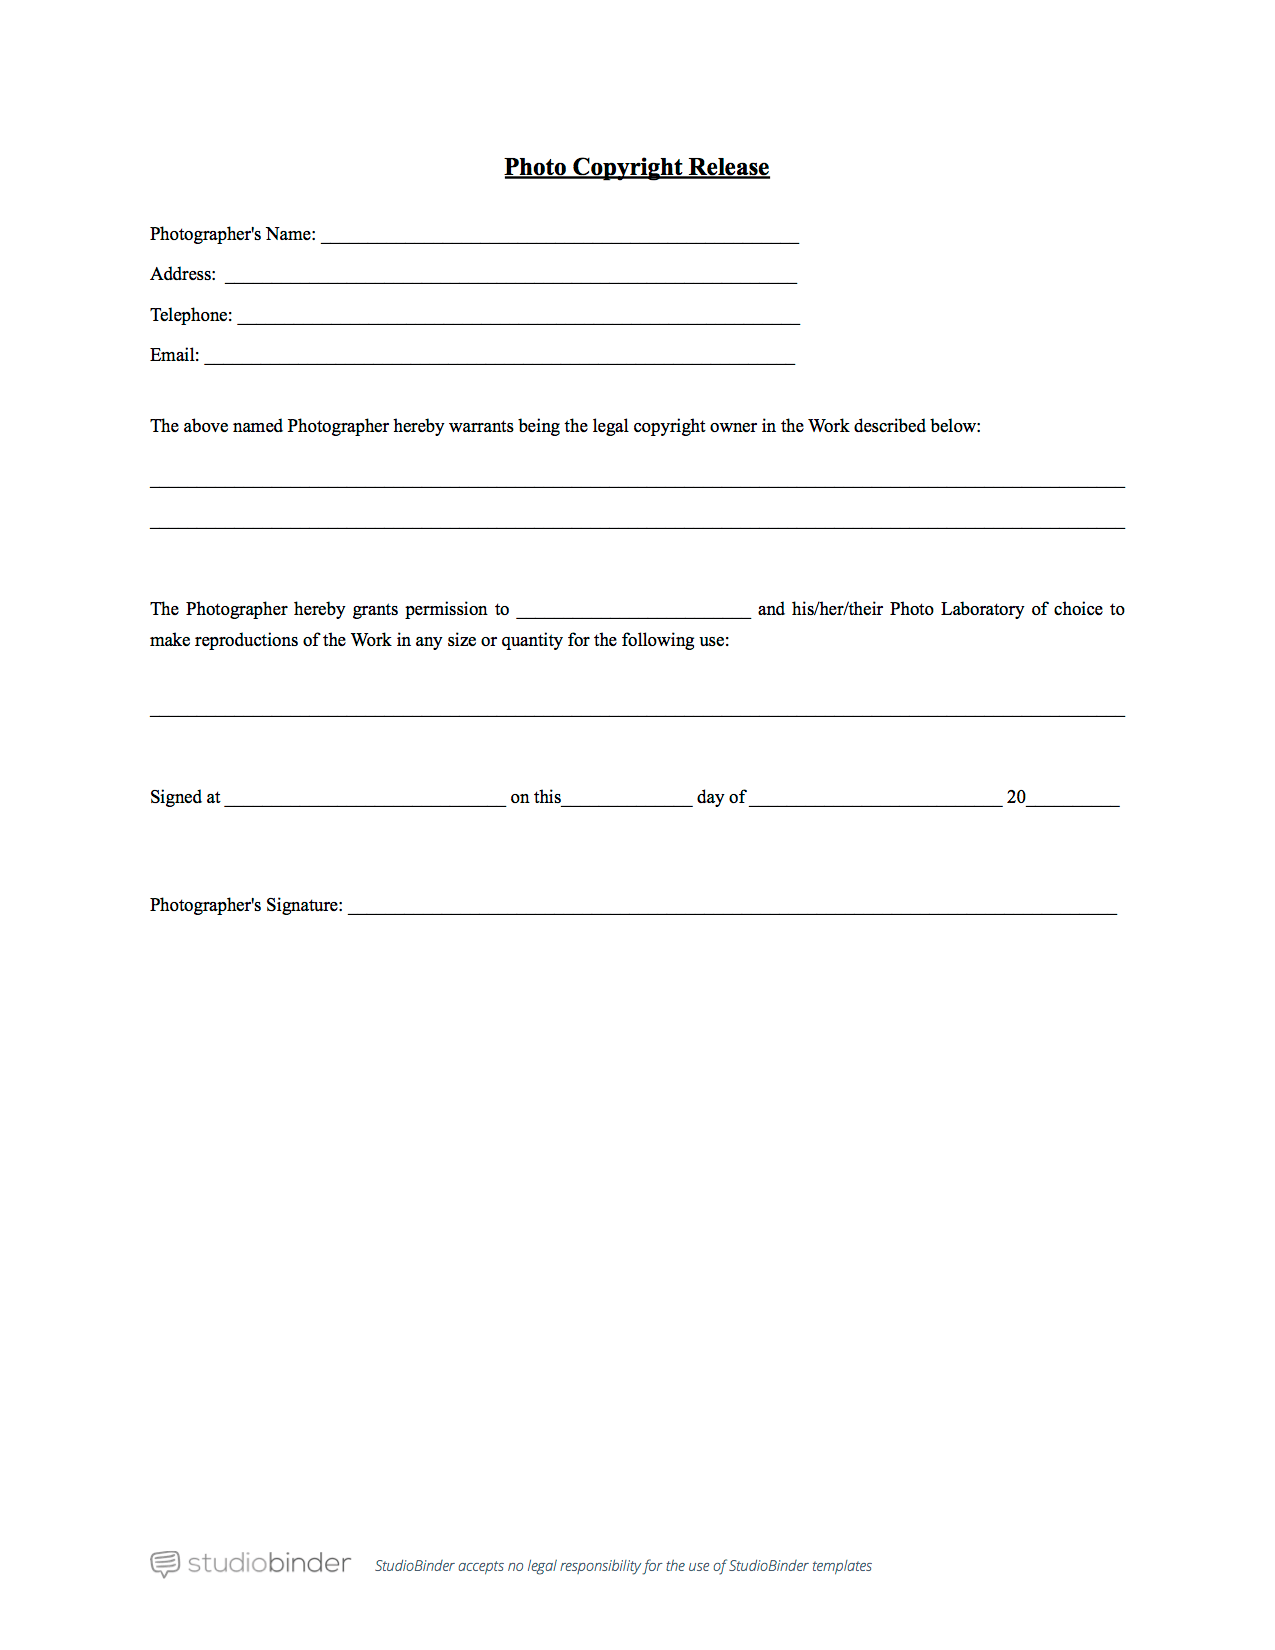 Legal Waiver Form Templates create voucher – Simple Liability Waiver